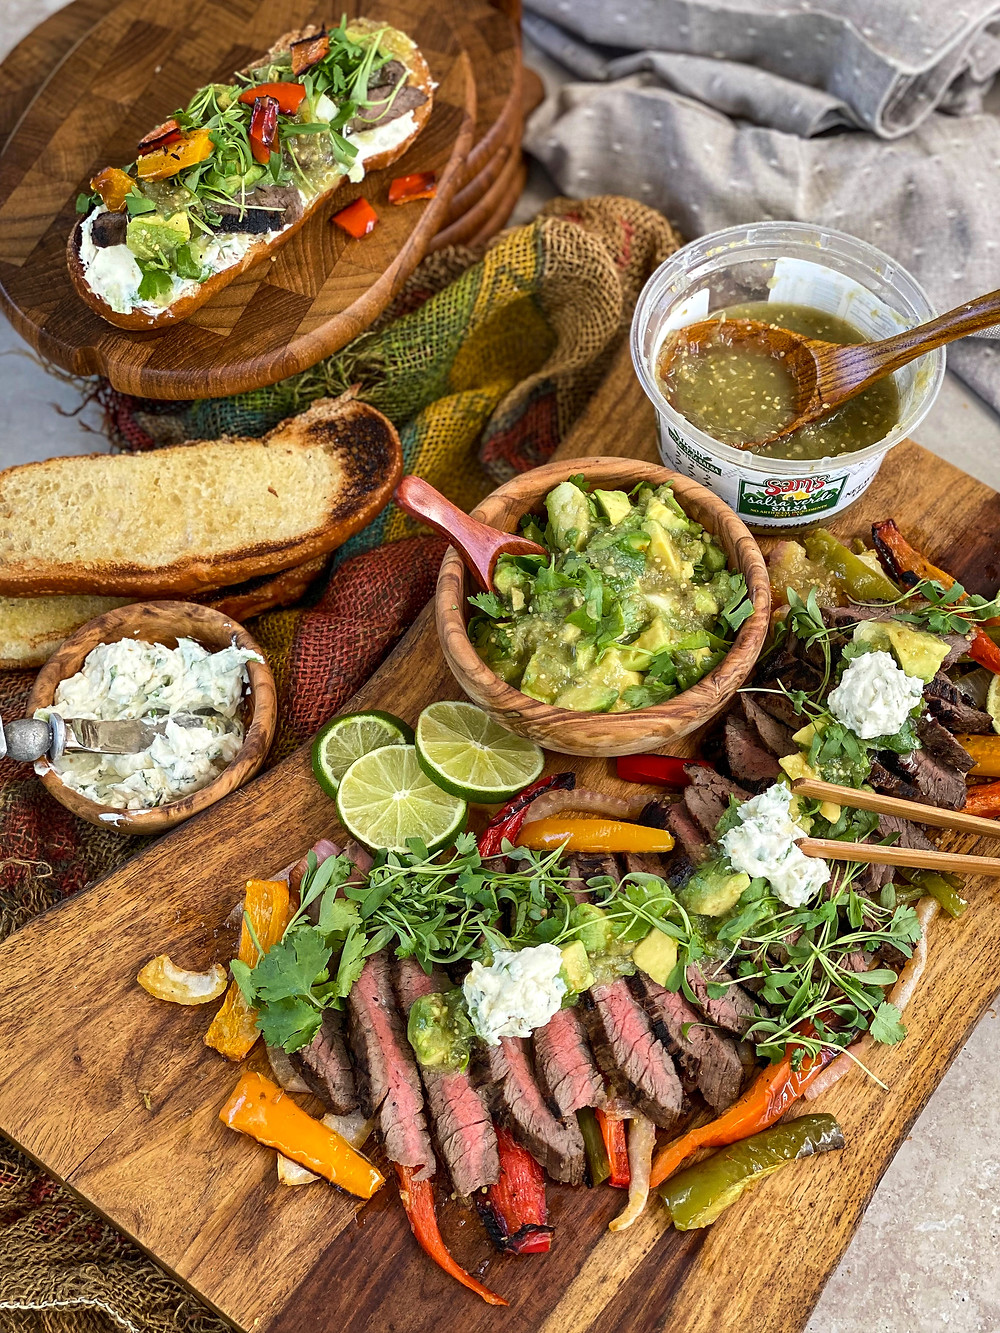 An overview of a table set for creating a salsa verde steak tartine.